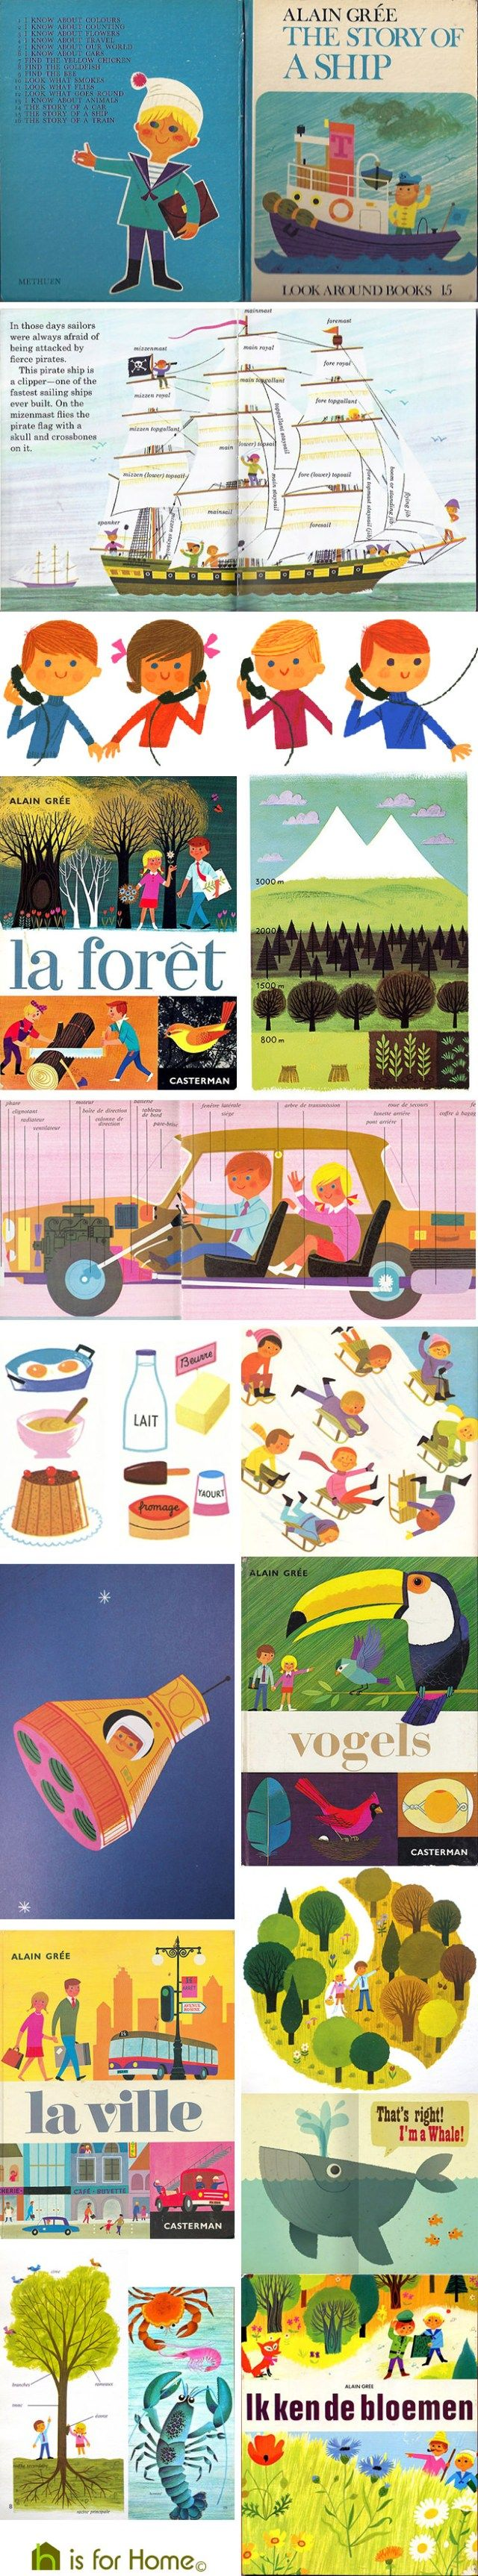 Eighty years old this year (2016), Grée is an illustrator, mainly known for his children's books and board games. #illustration #vintage #graphicdesign